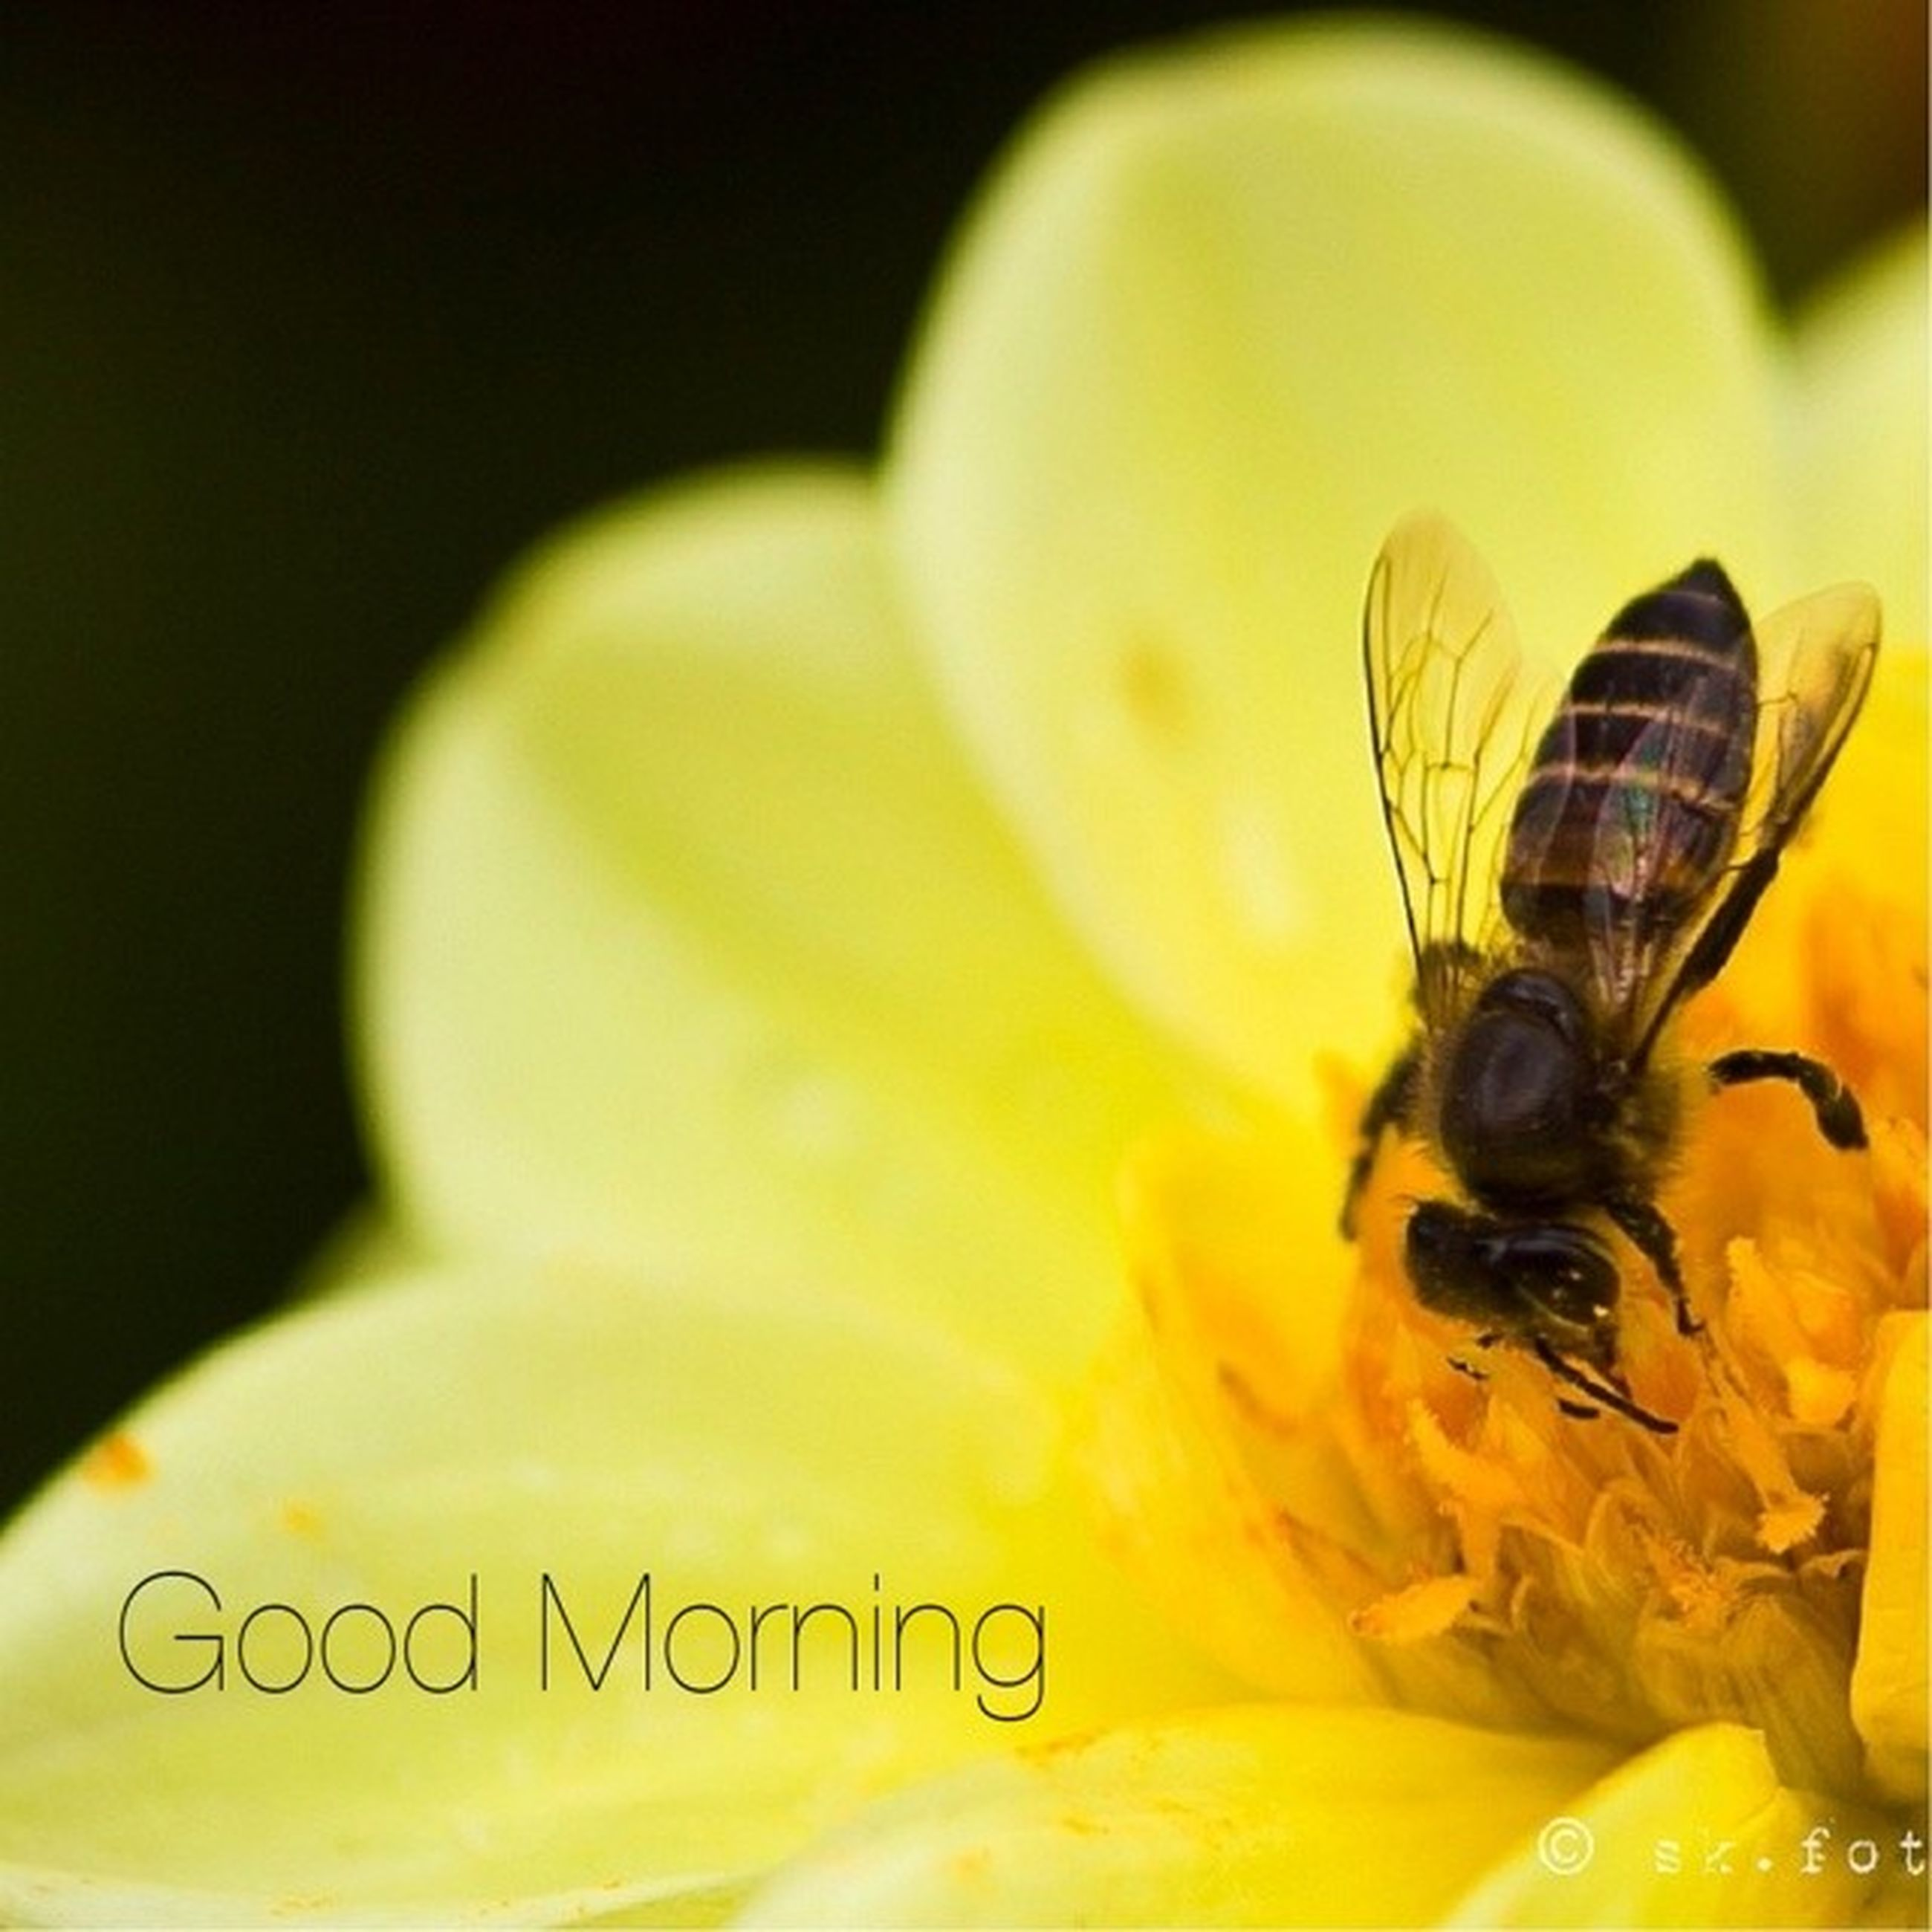 flower, petal, yellow, flower head, close-up, fragility, freshness, single flower, beauty in nature, pollen, selective focus, extreme close-up, nature, growth, focus on foreground, stamen, studio shot, insect, blooming, indoors